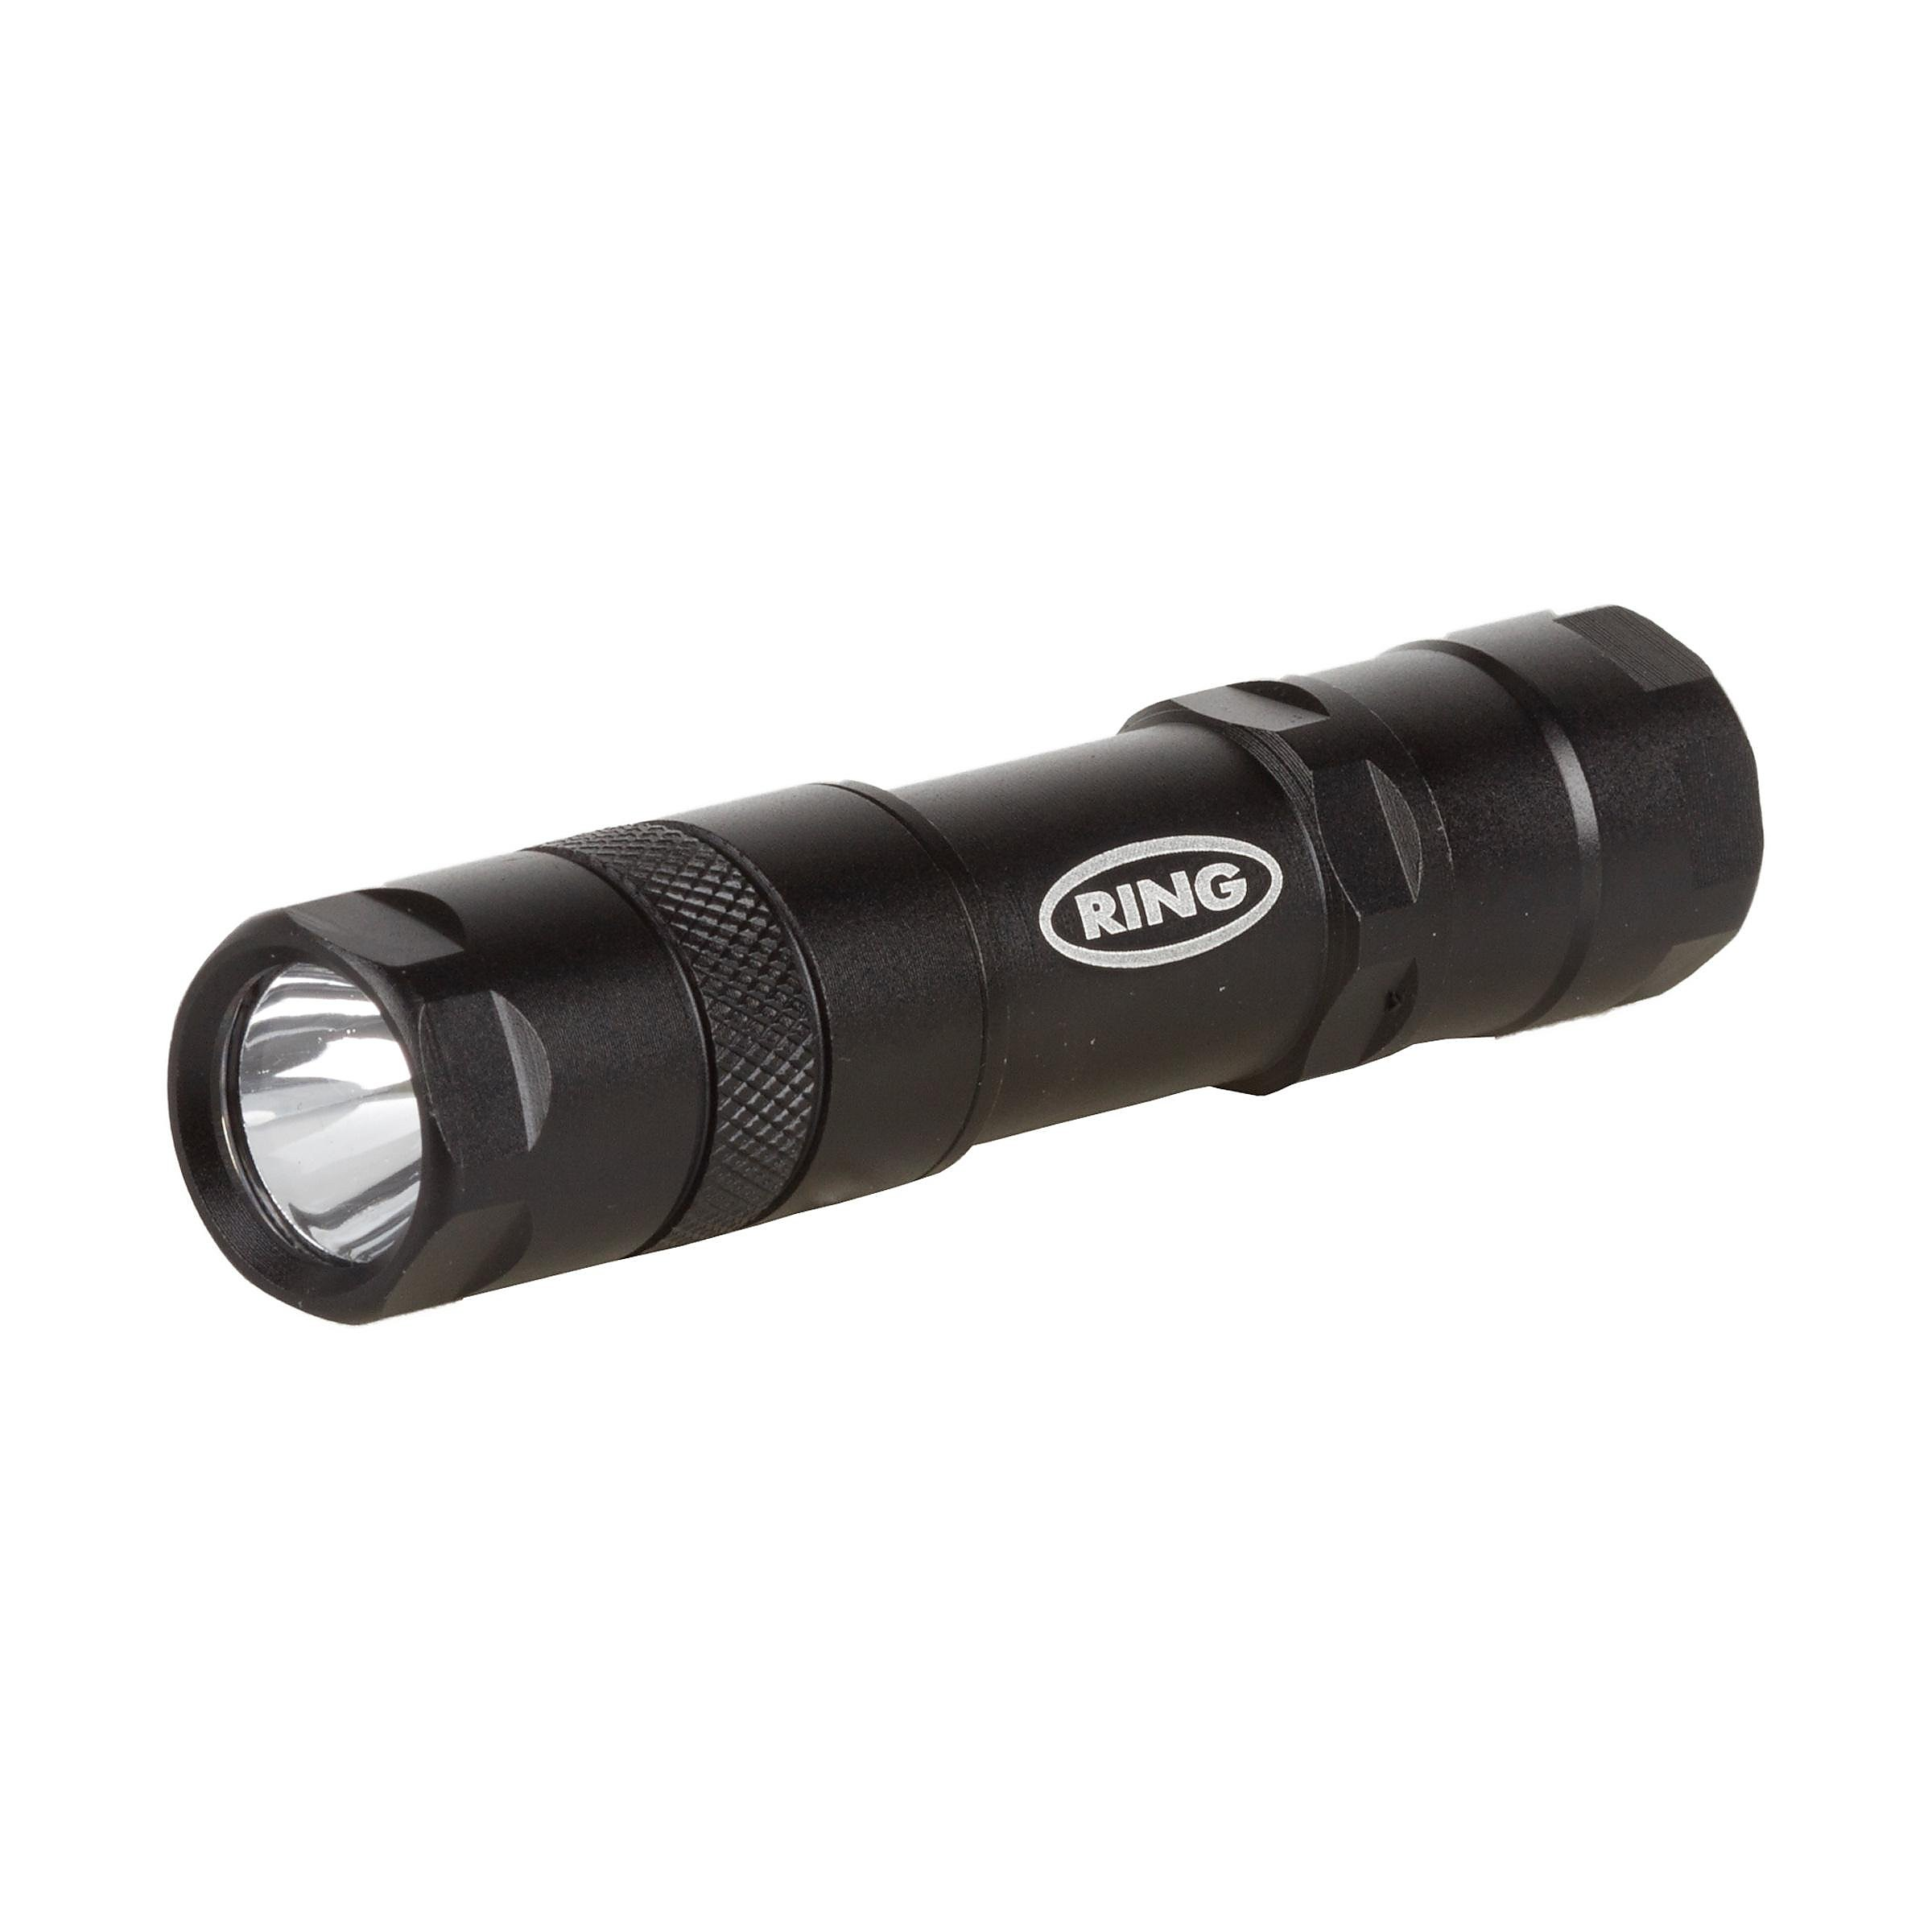 Ring 30 Lumen LED Torch